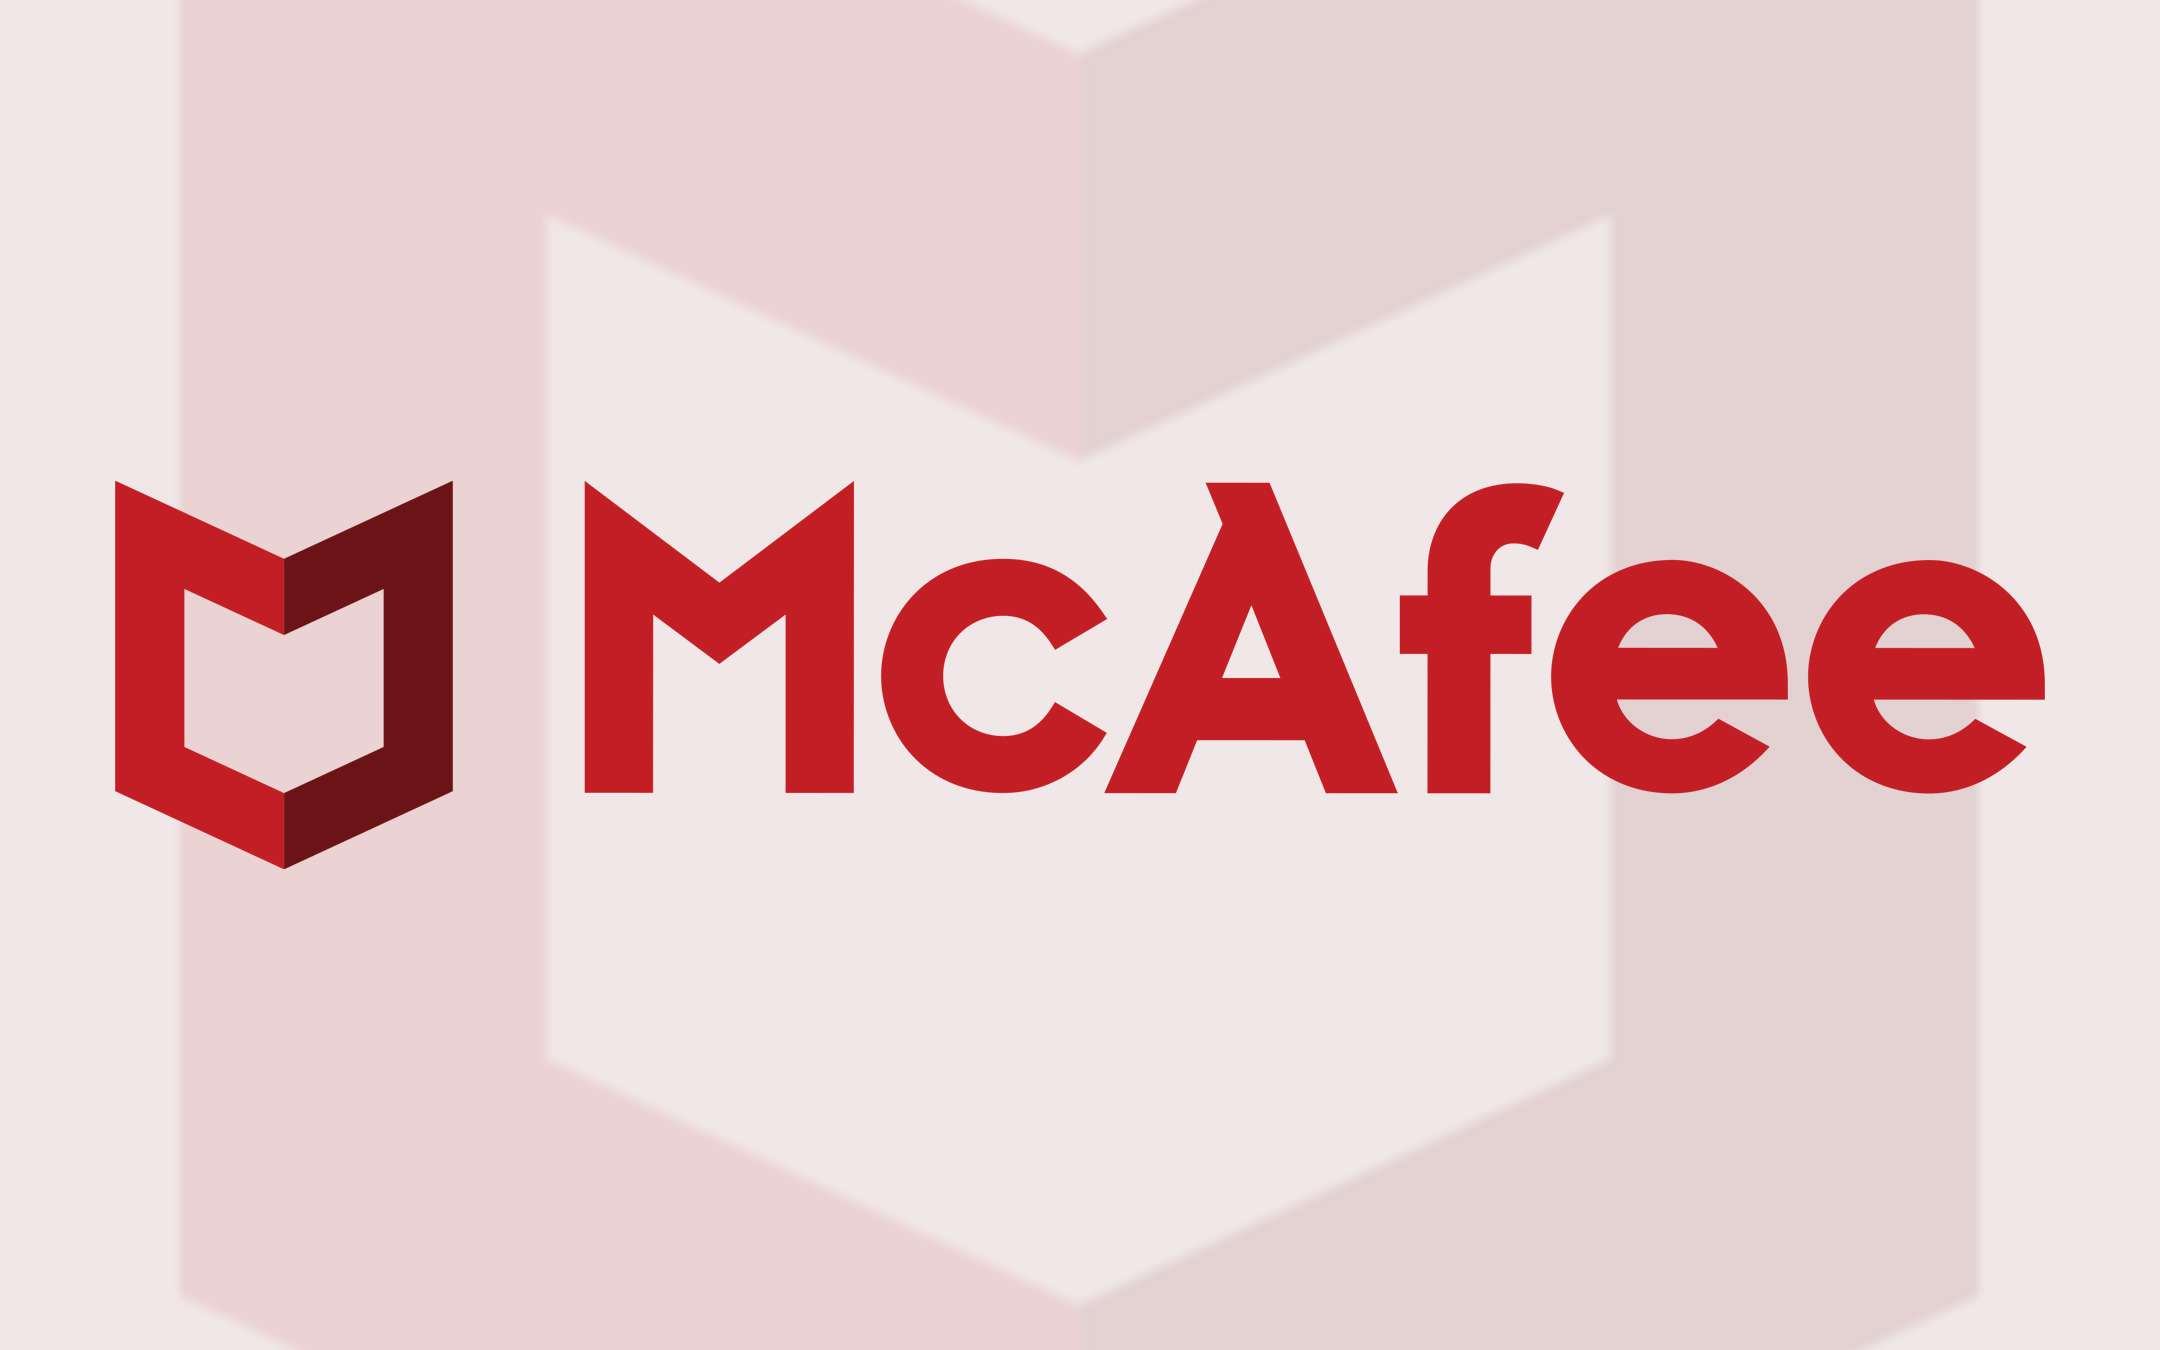 McAfee Consumer Only: Sells enterprise business